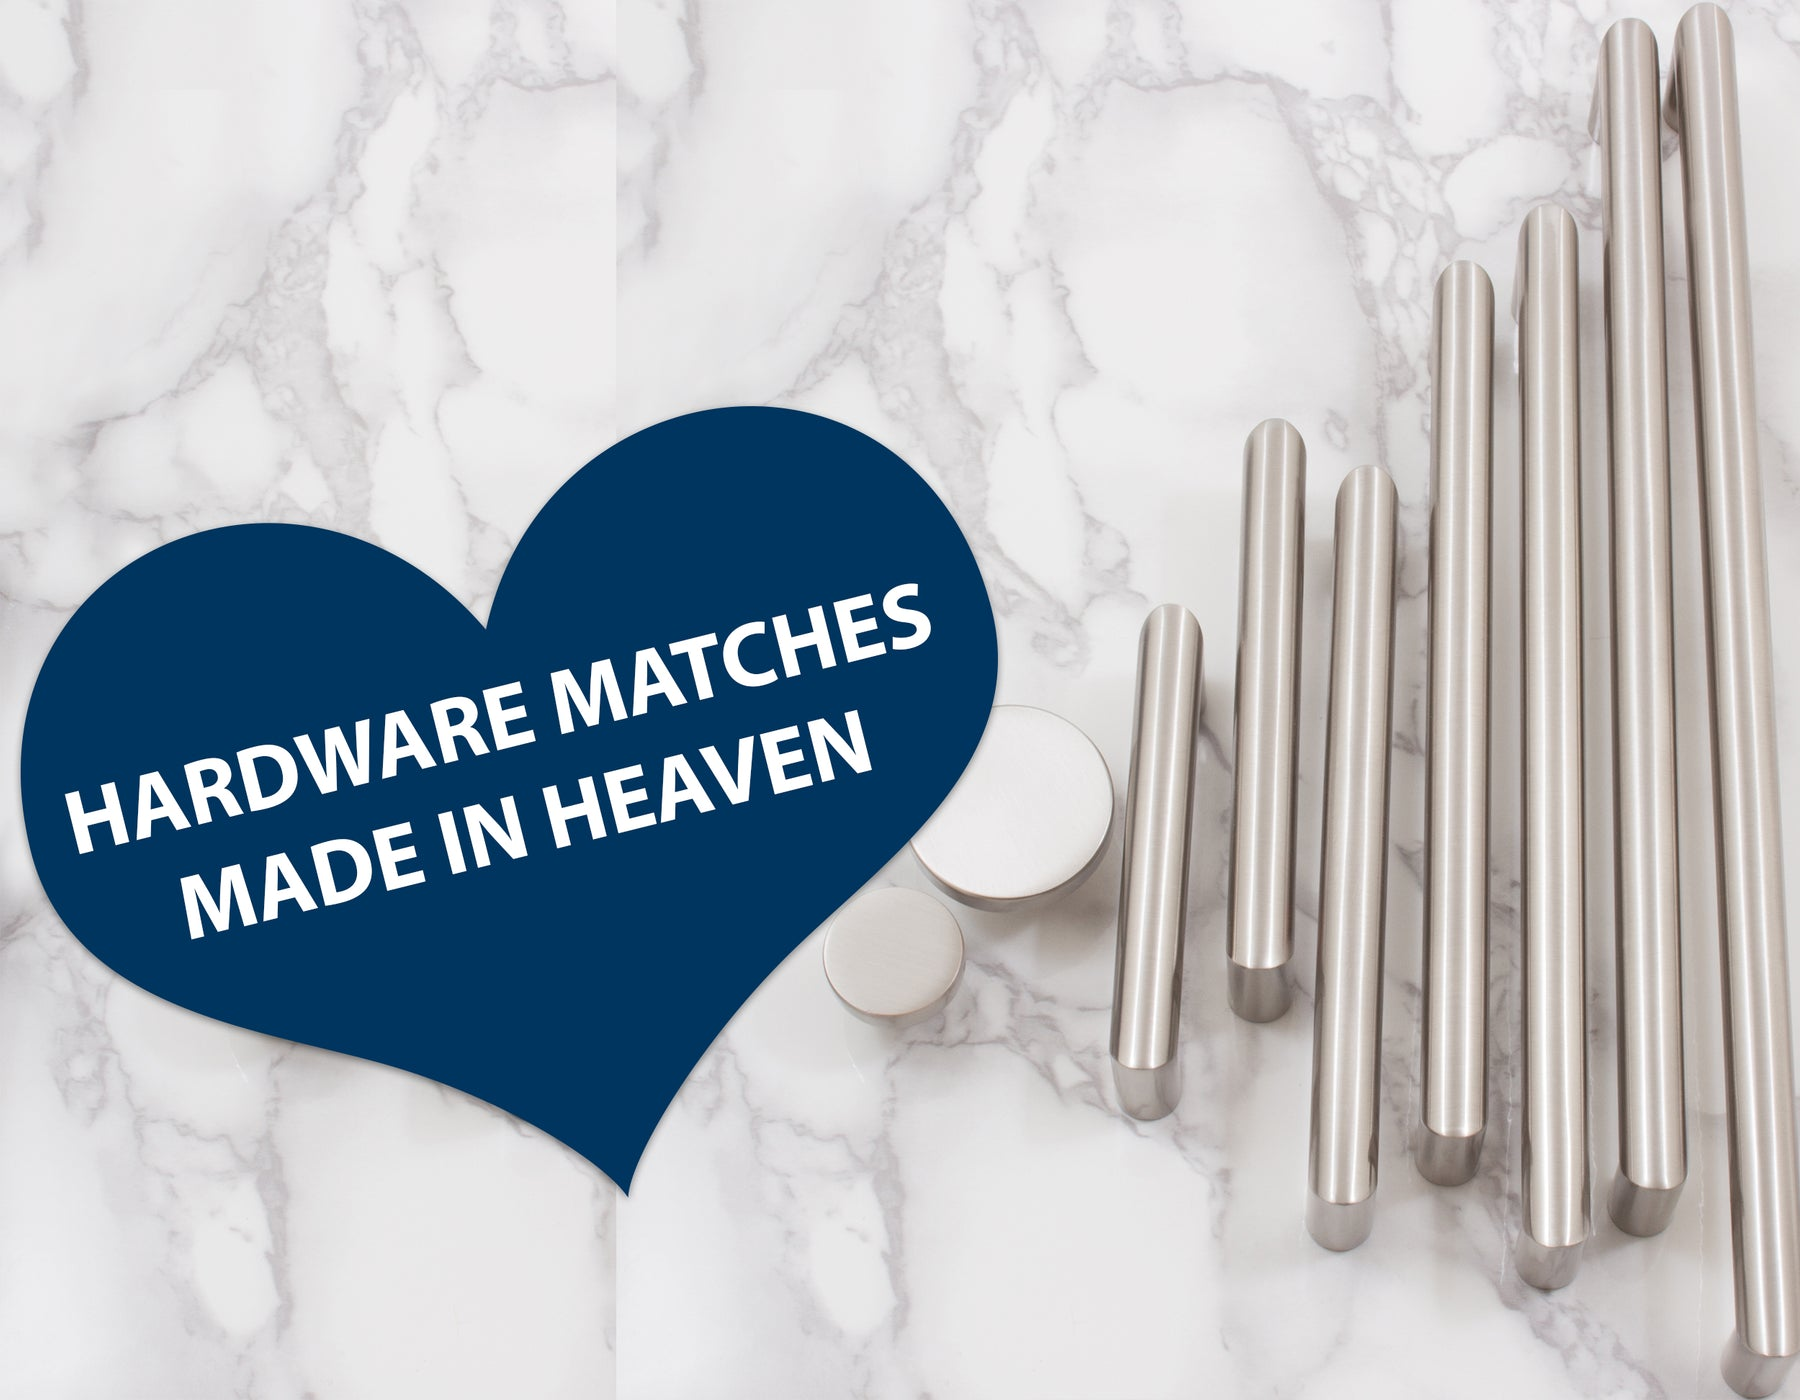 Hardware Matches Made in Heaven